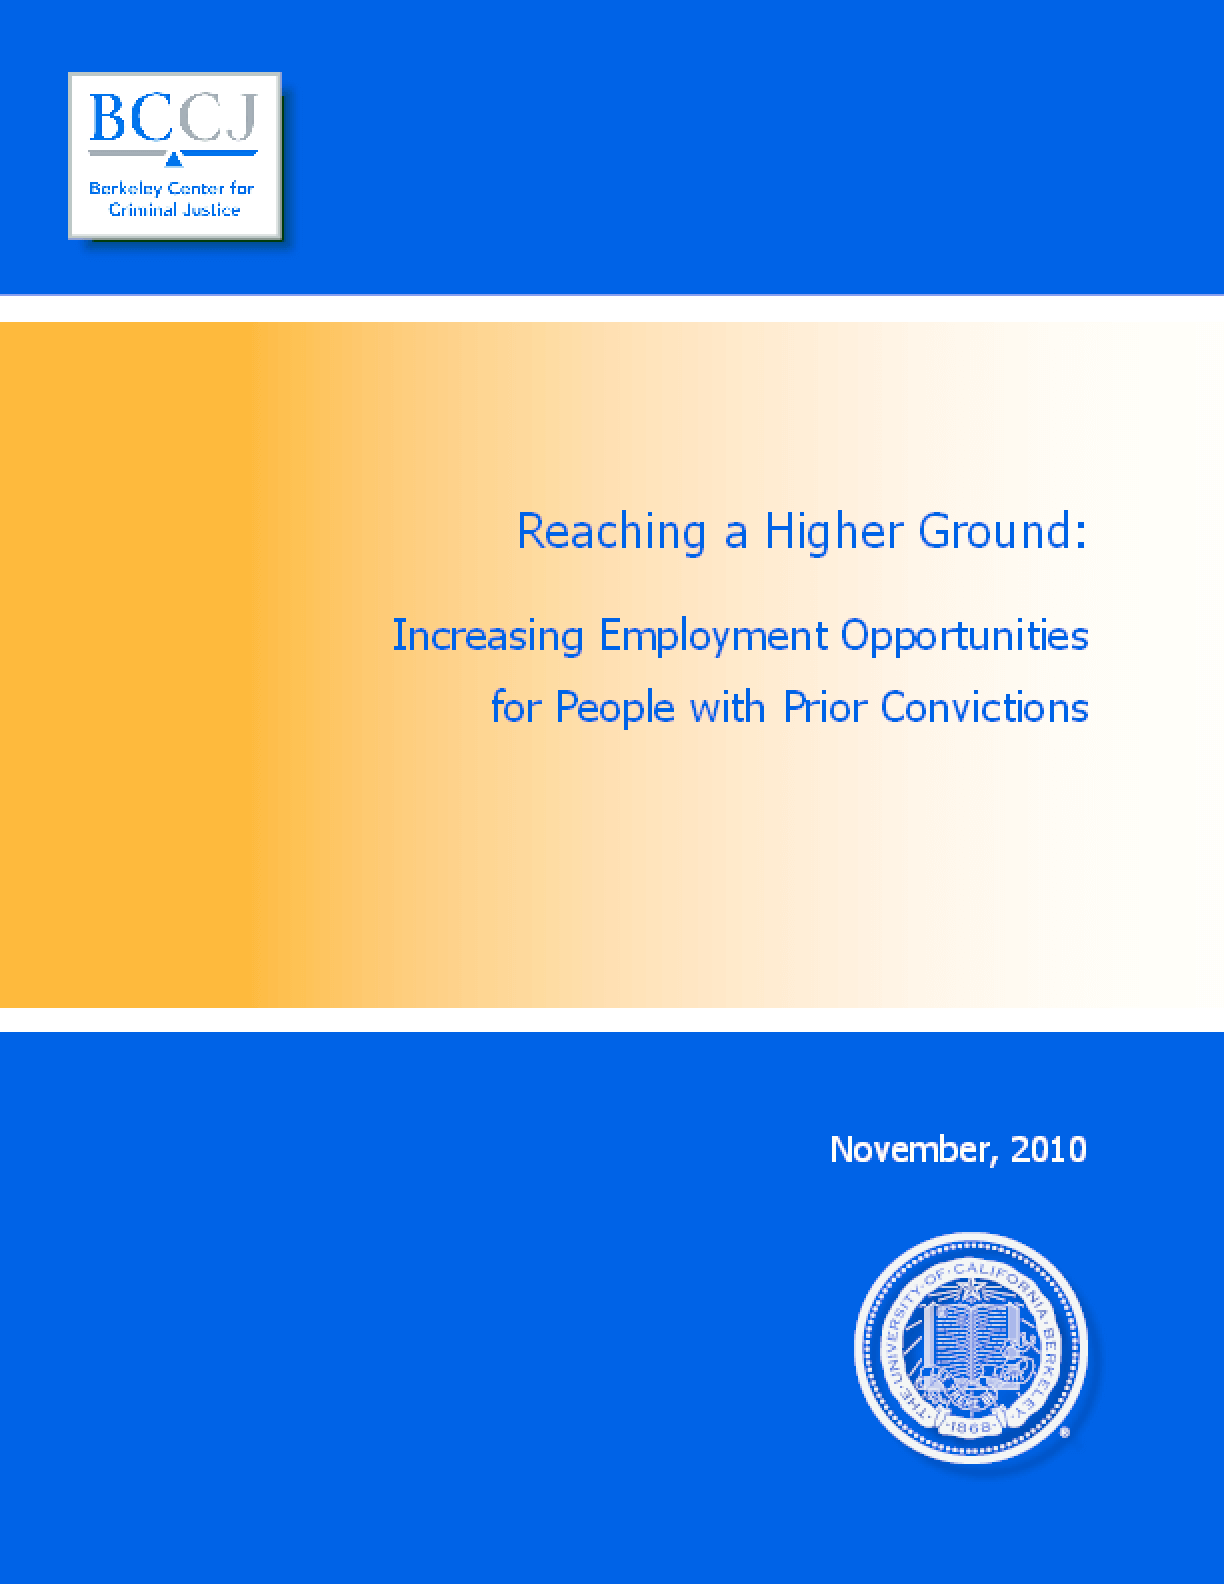 Reaching a Higher Ground: Increasing Employment Opportunities for People With Prior Convictions